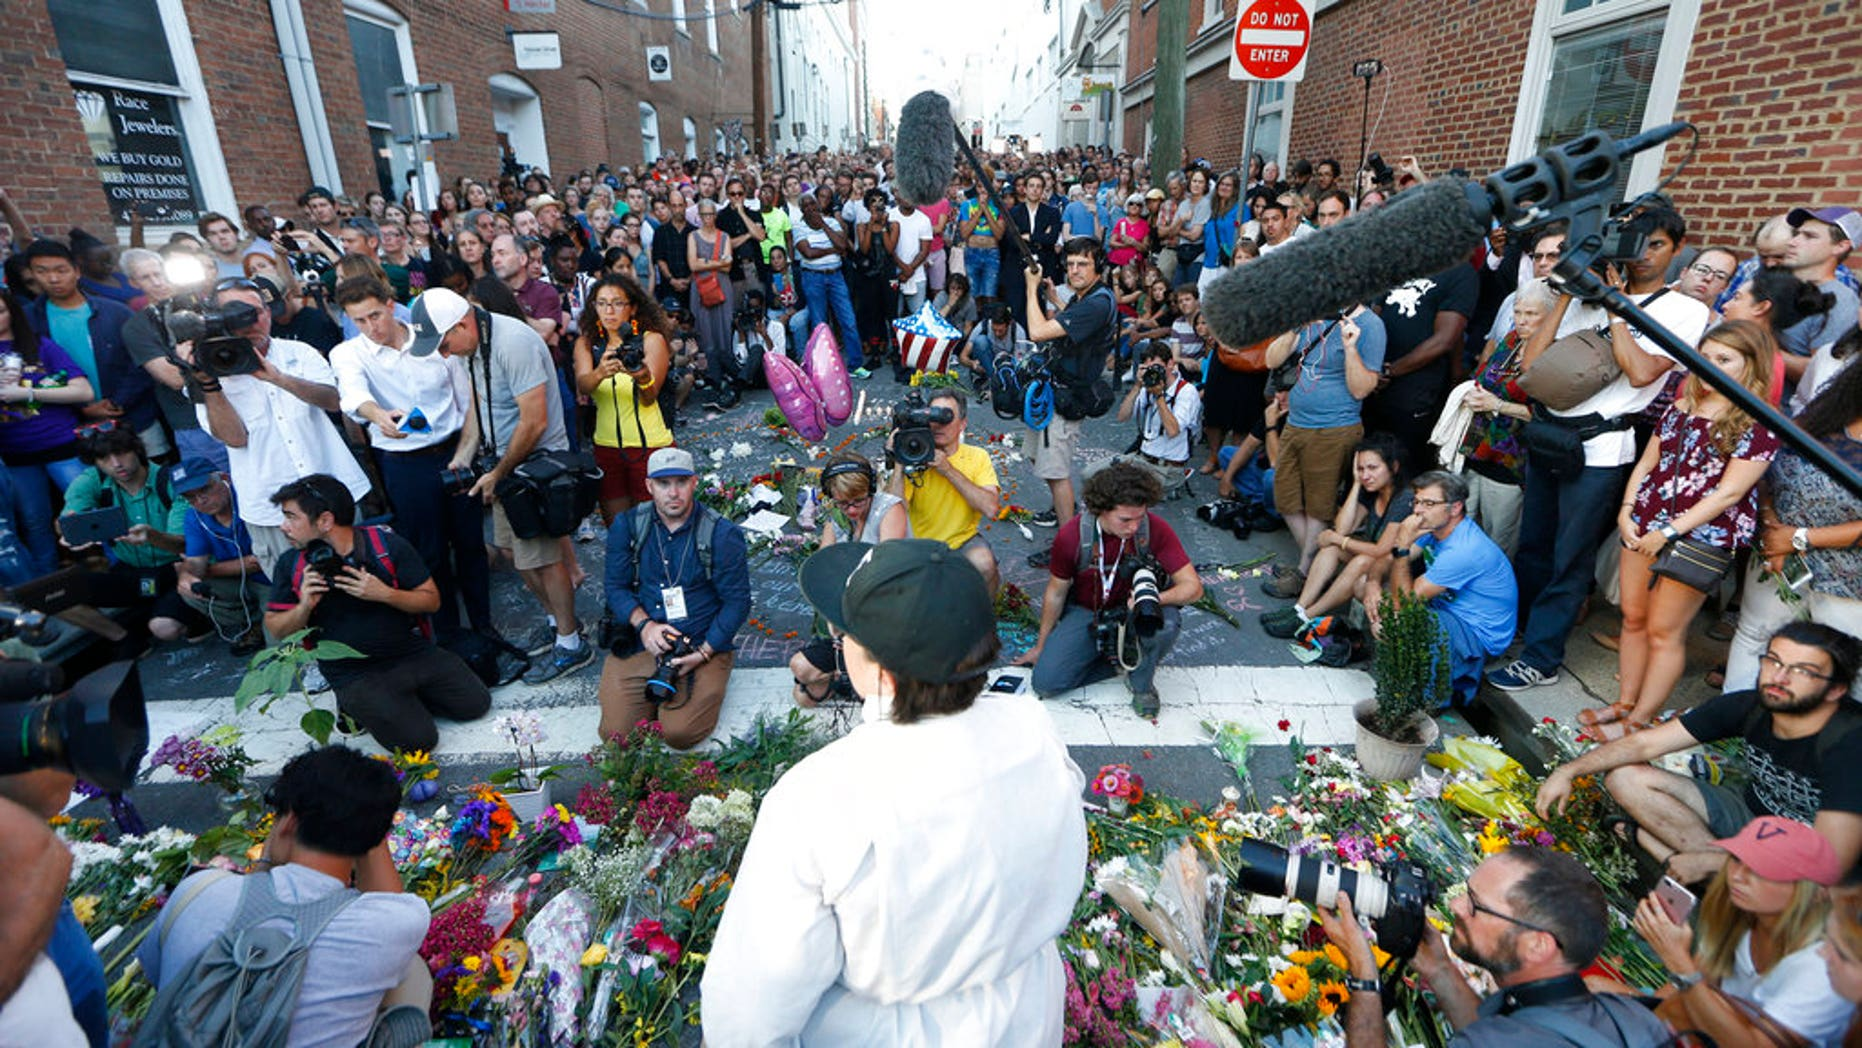 A vigil was held in Charlottesville, Va., one day after a car rammed into a crowd of people, killing one and leaving 19 injured.